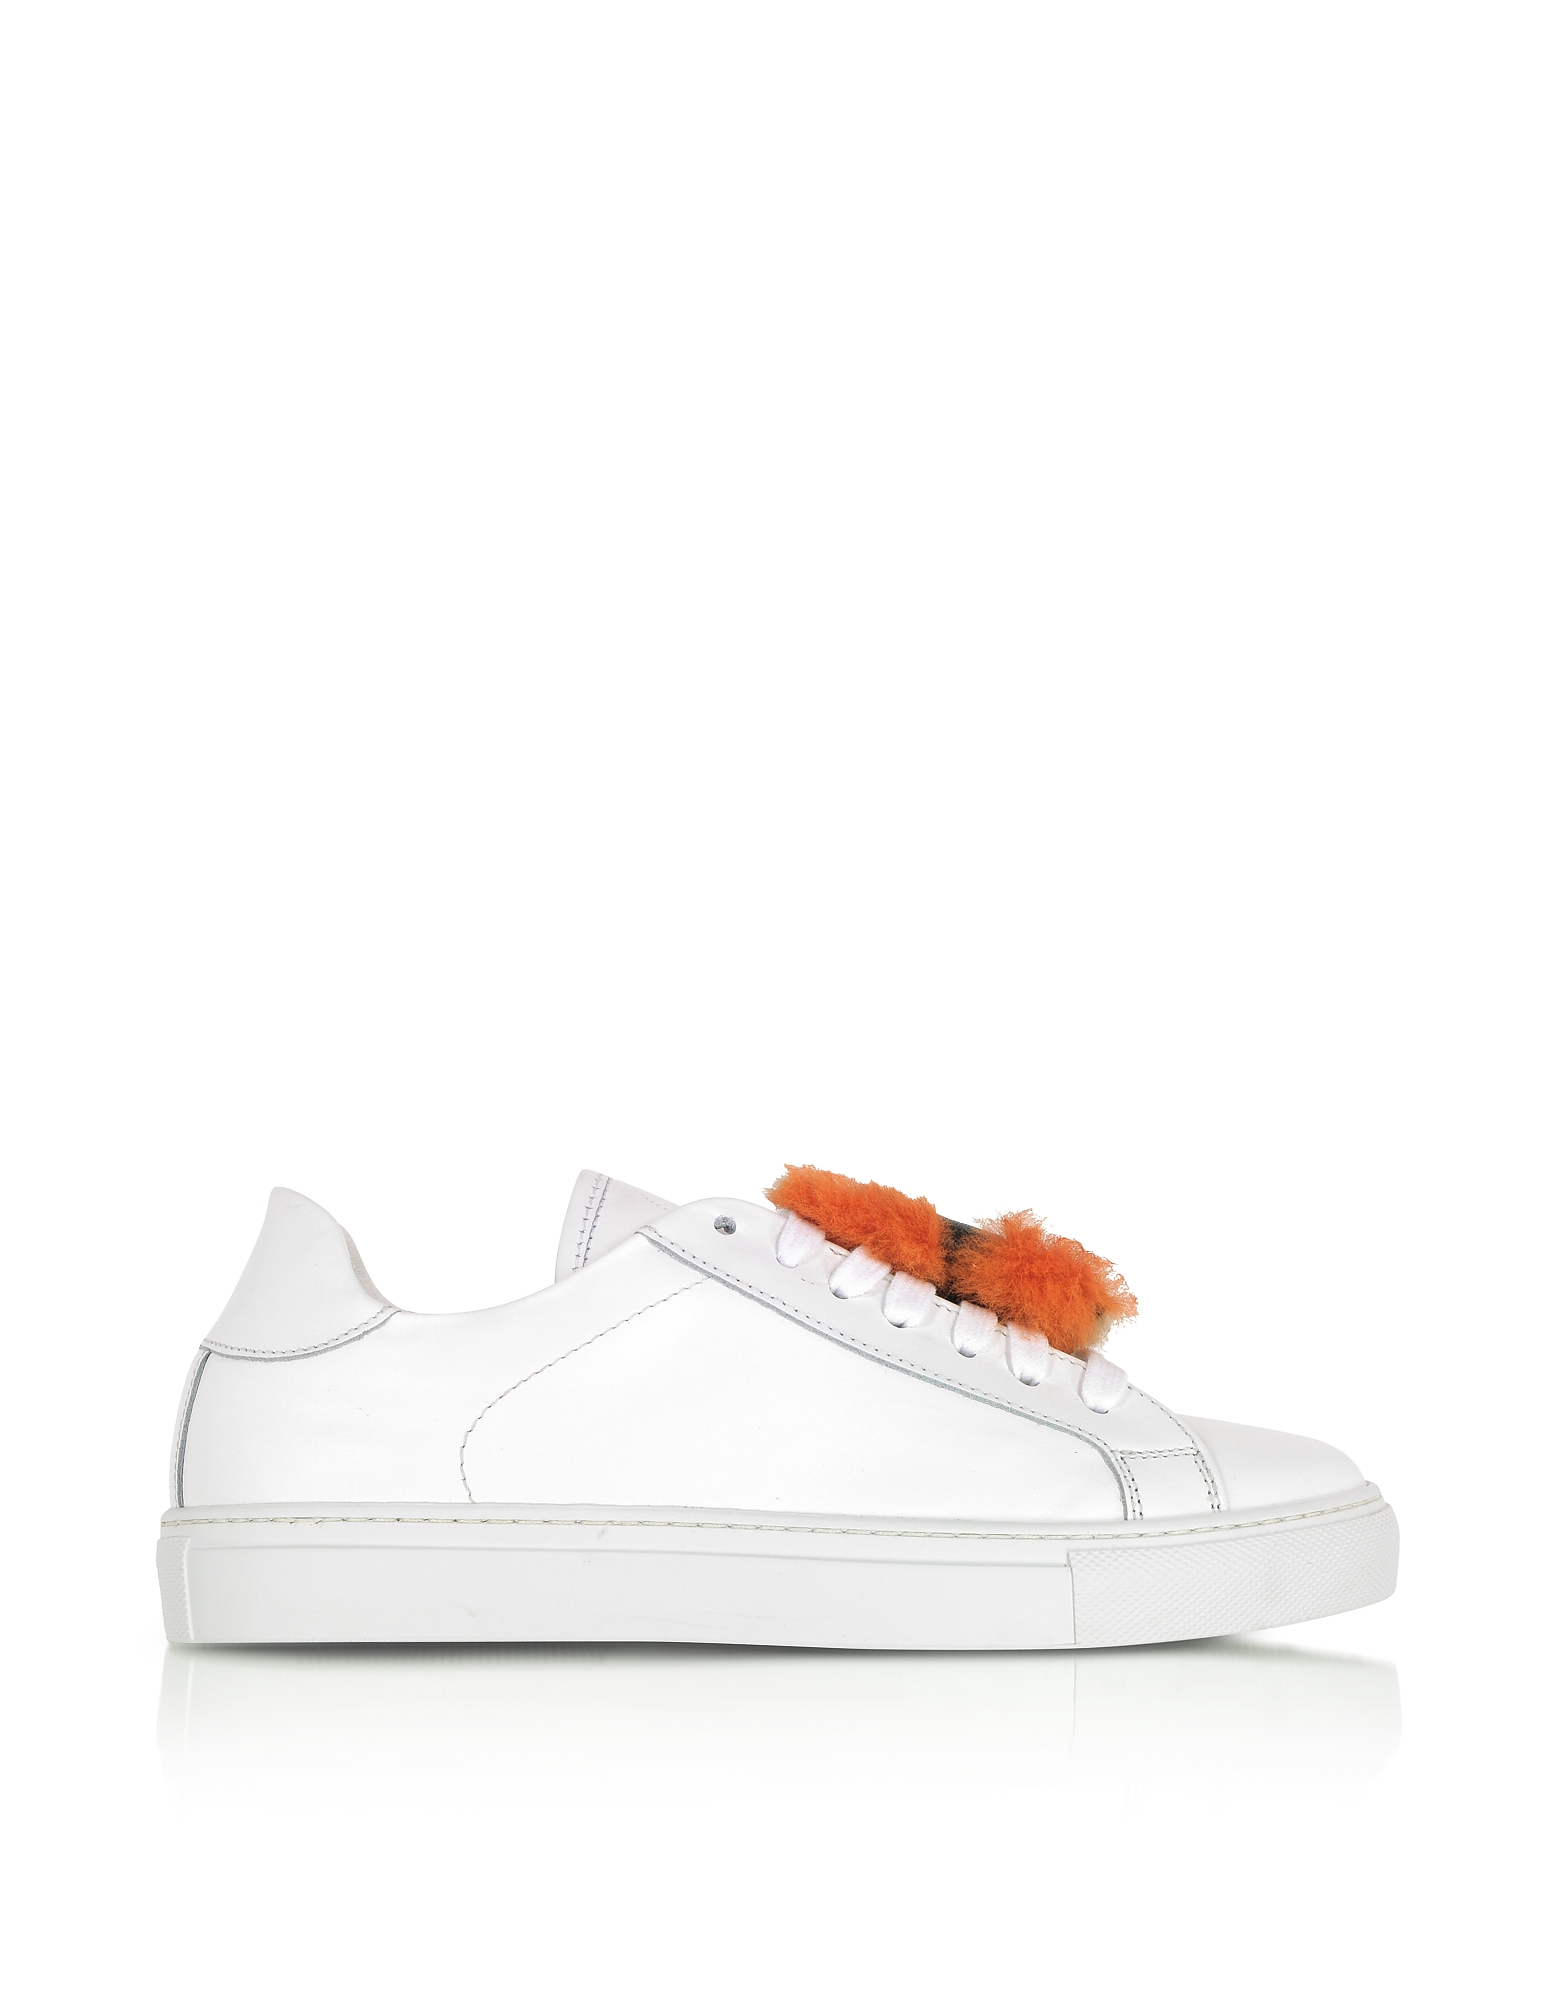 Joshua Sanders Shoes, Sushi White Leather Low Top Women's Sneakers